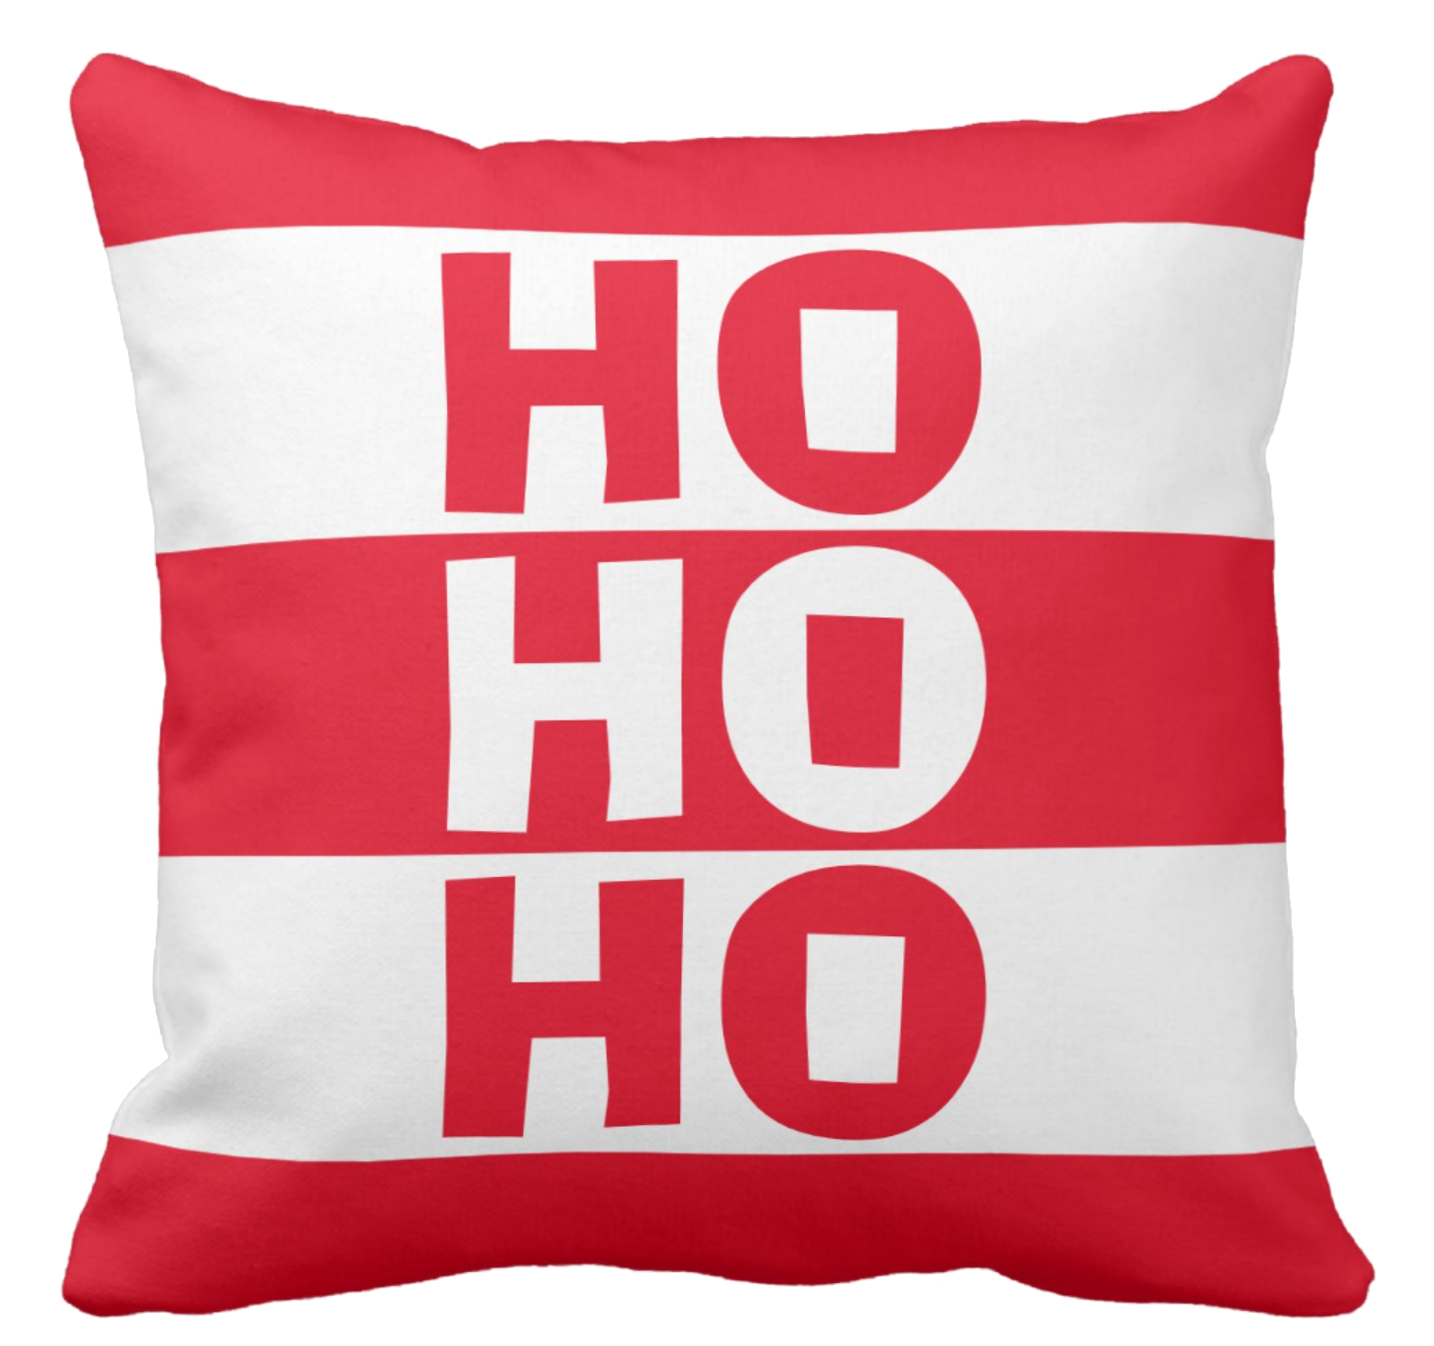 Ho Ho Pillow